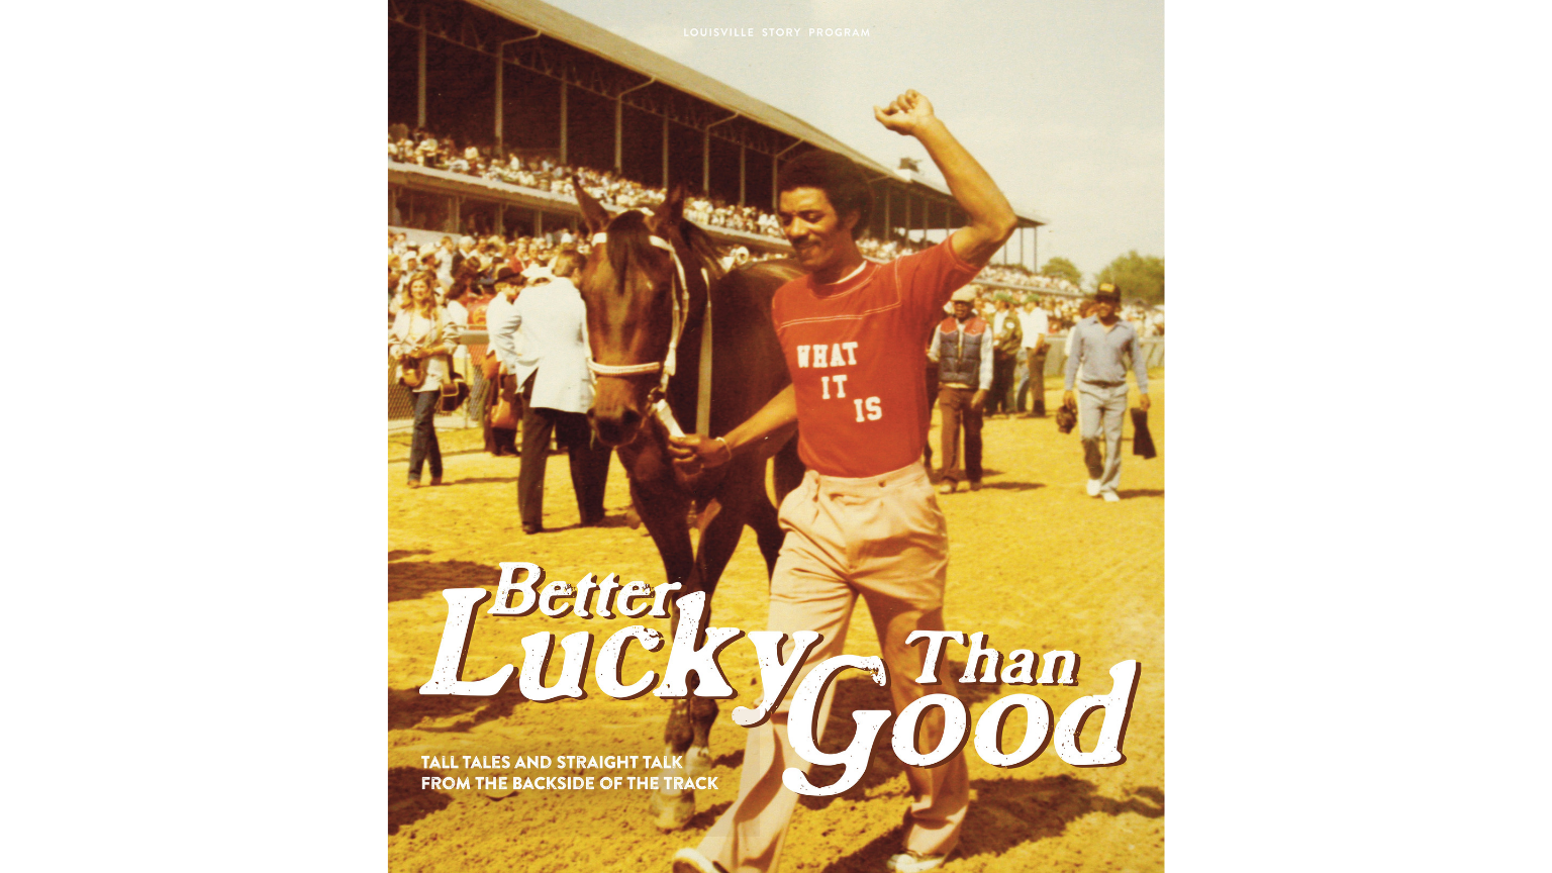 A book richly documenting the backside of Churchill Downs, home of the Kentucky Derby, written by the people who work there.